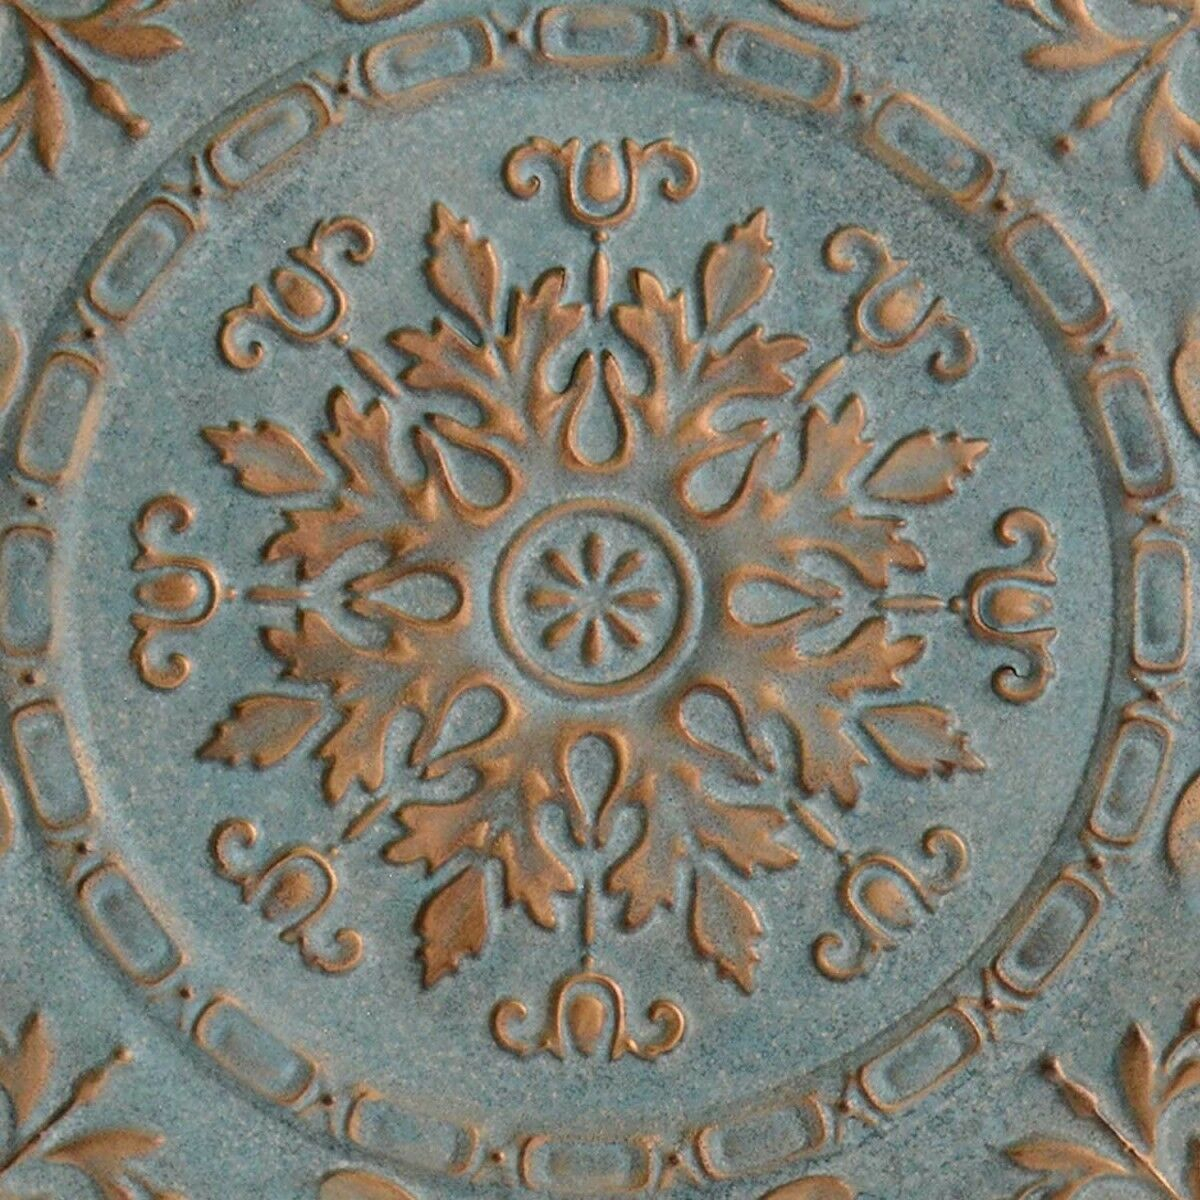 Details About Stratton Home Decor S09598 European Medallion Wall Decor Blue throughout European Medallion Wall Decor (Image 7 of 30)